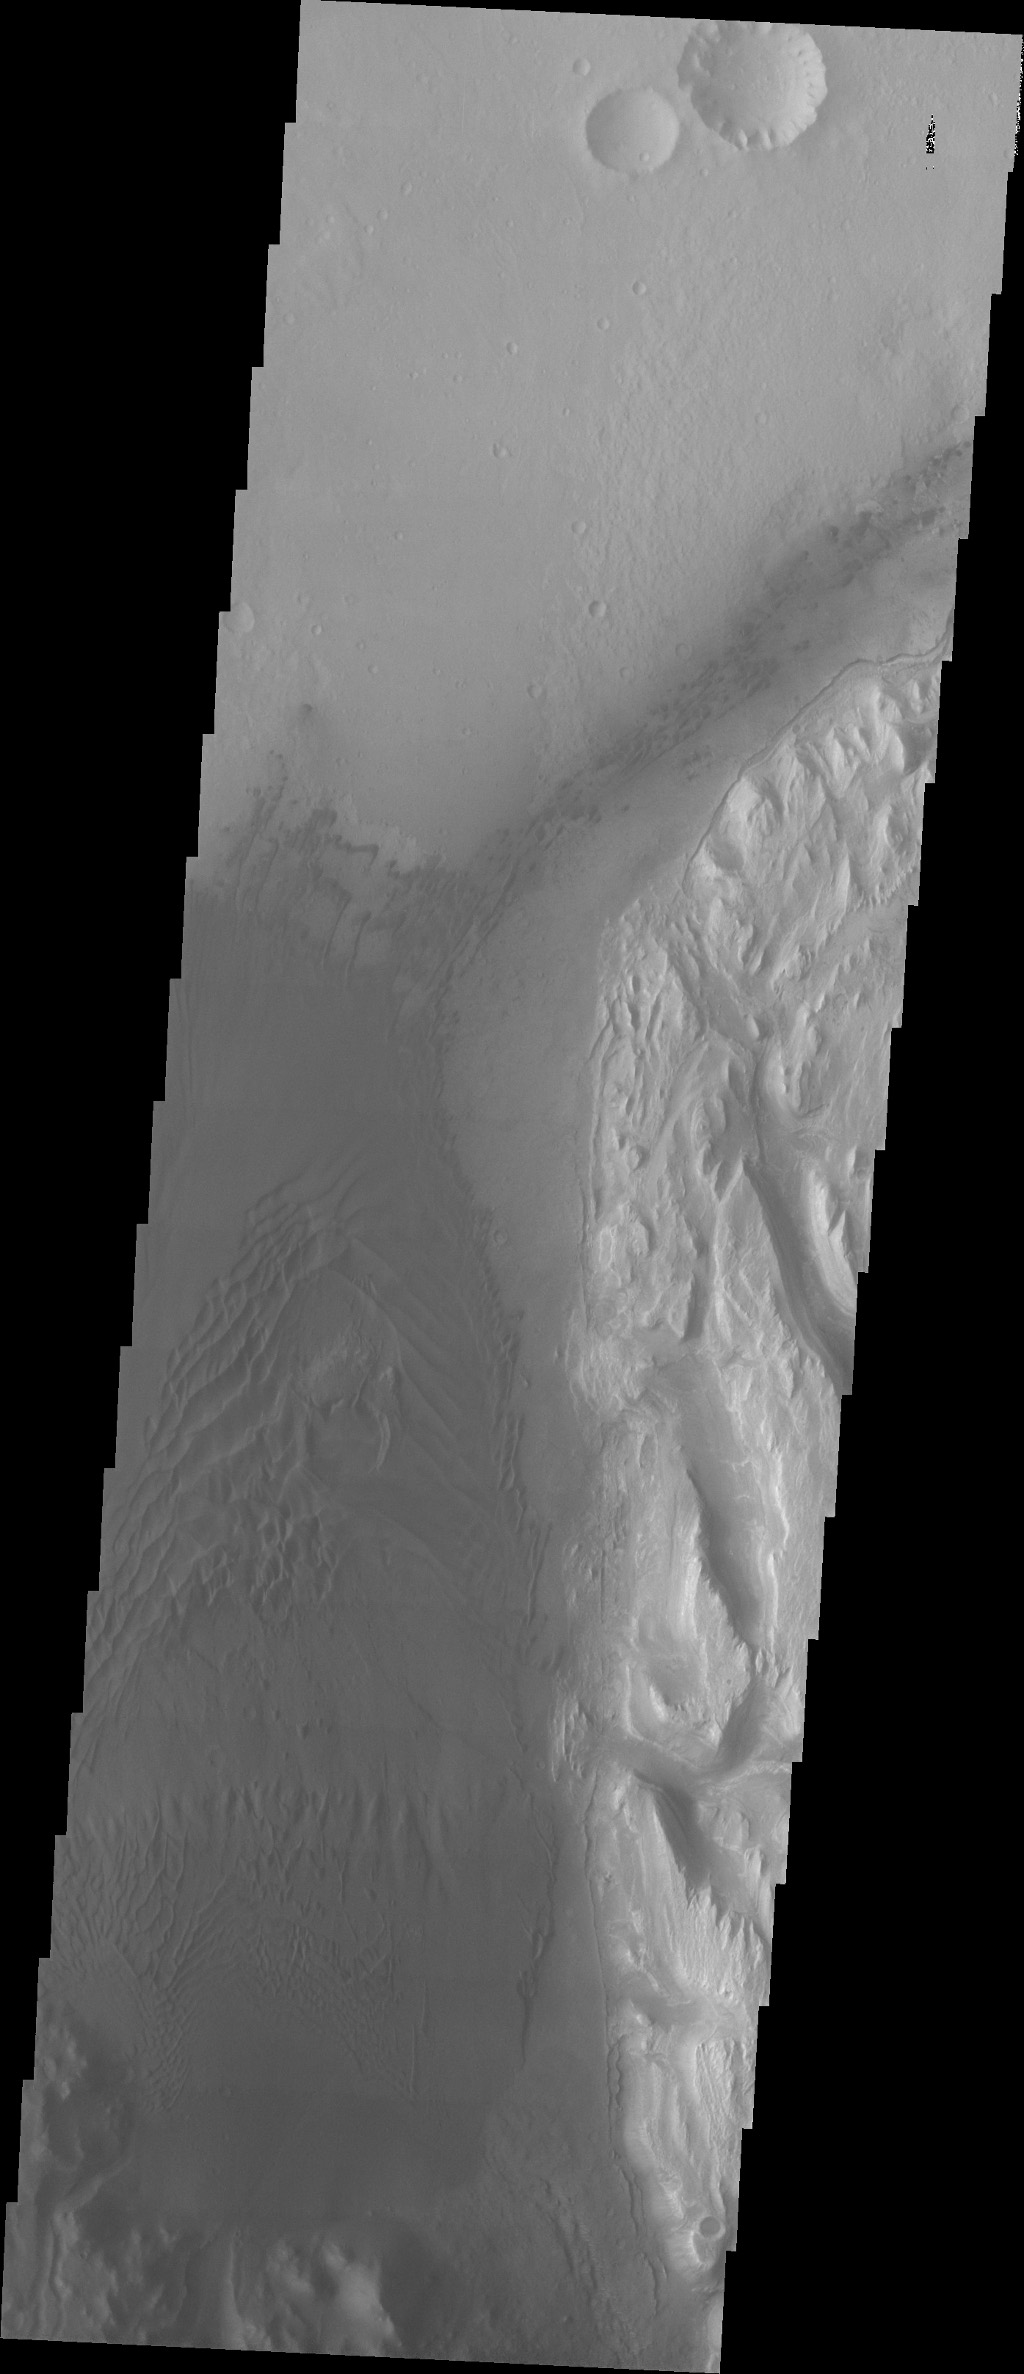 Showing the area just slightly west of the previous image, the large region of sand and sand dunes are the dark area that dominates this image captured by NASA's 2001 Mars Odyssey spacecraft.